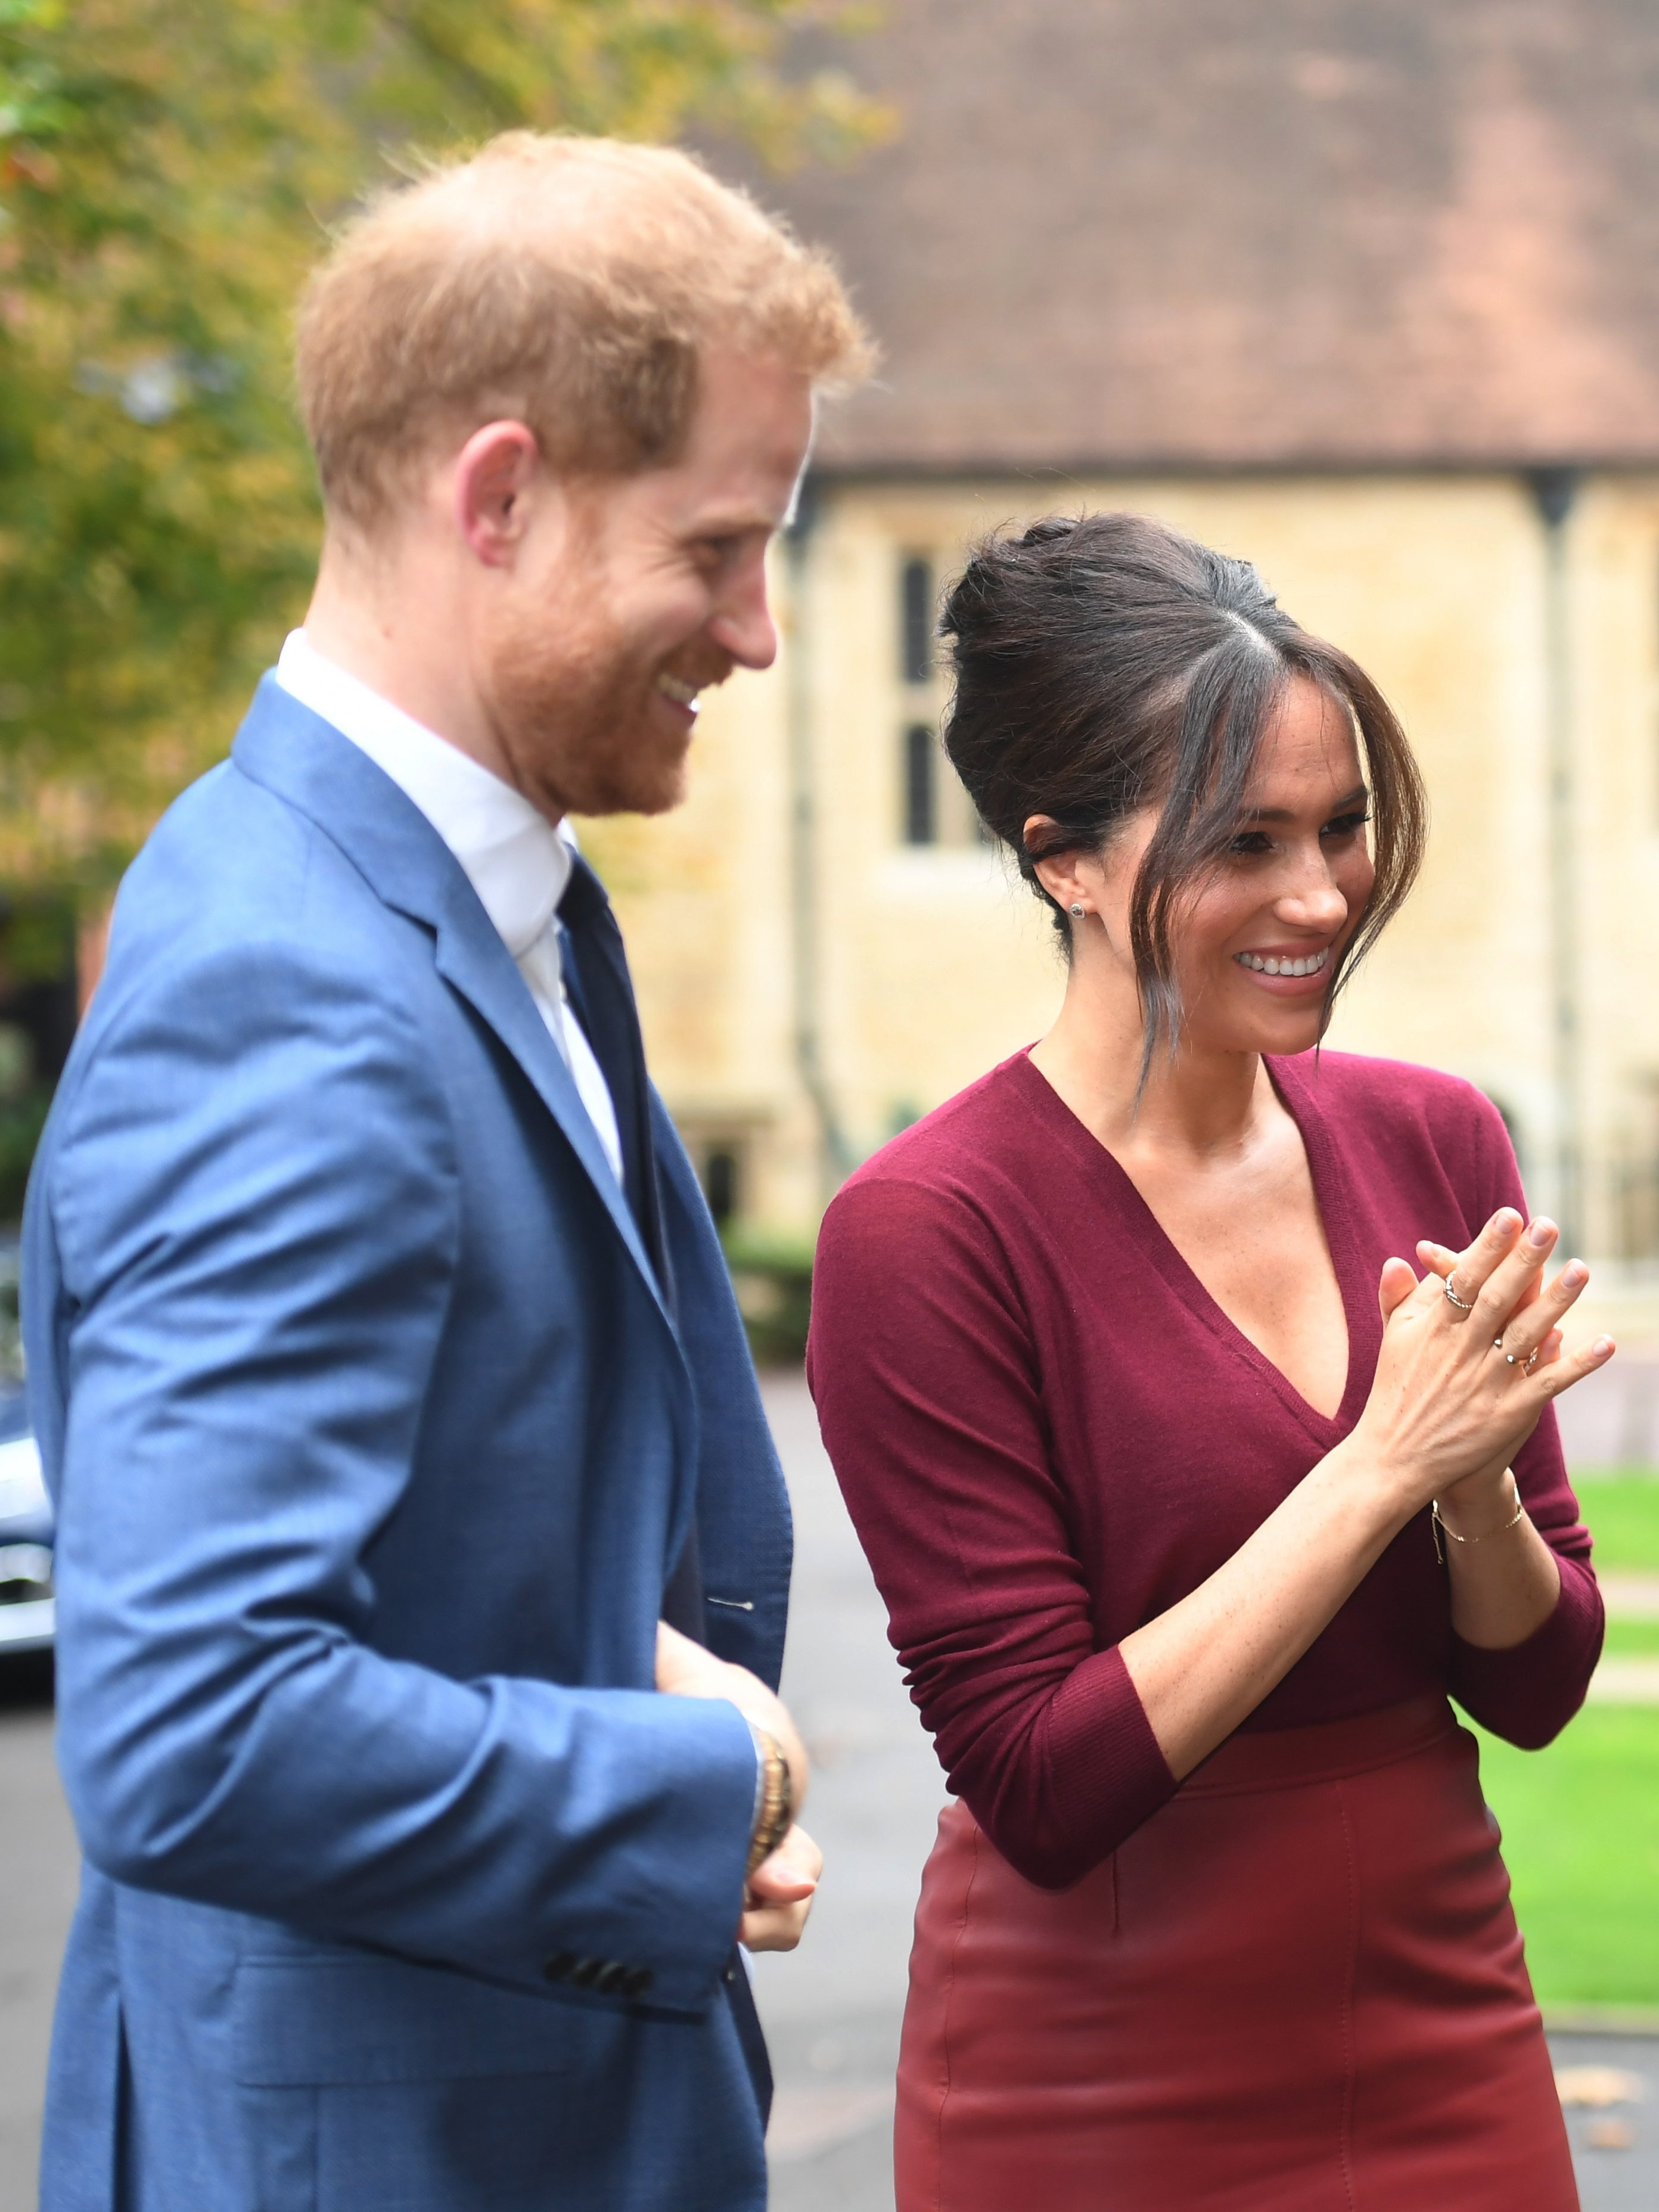 Meghan Markle and Prince Harry attend a roundtable discussion on gender equality with The Queens Commonwealth Trust (QCT) and One Young World at Windsor Castle on October 25, 2019 in Windsor, England | Photo: Getty Images